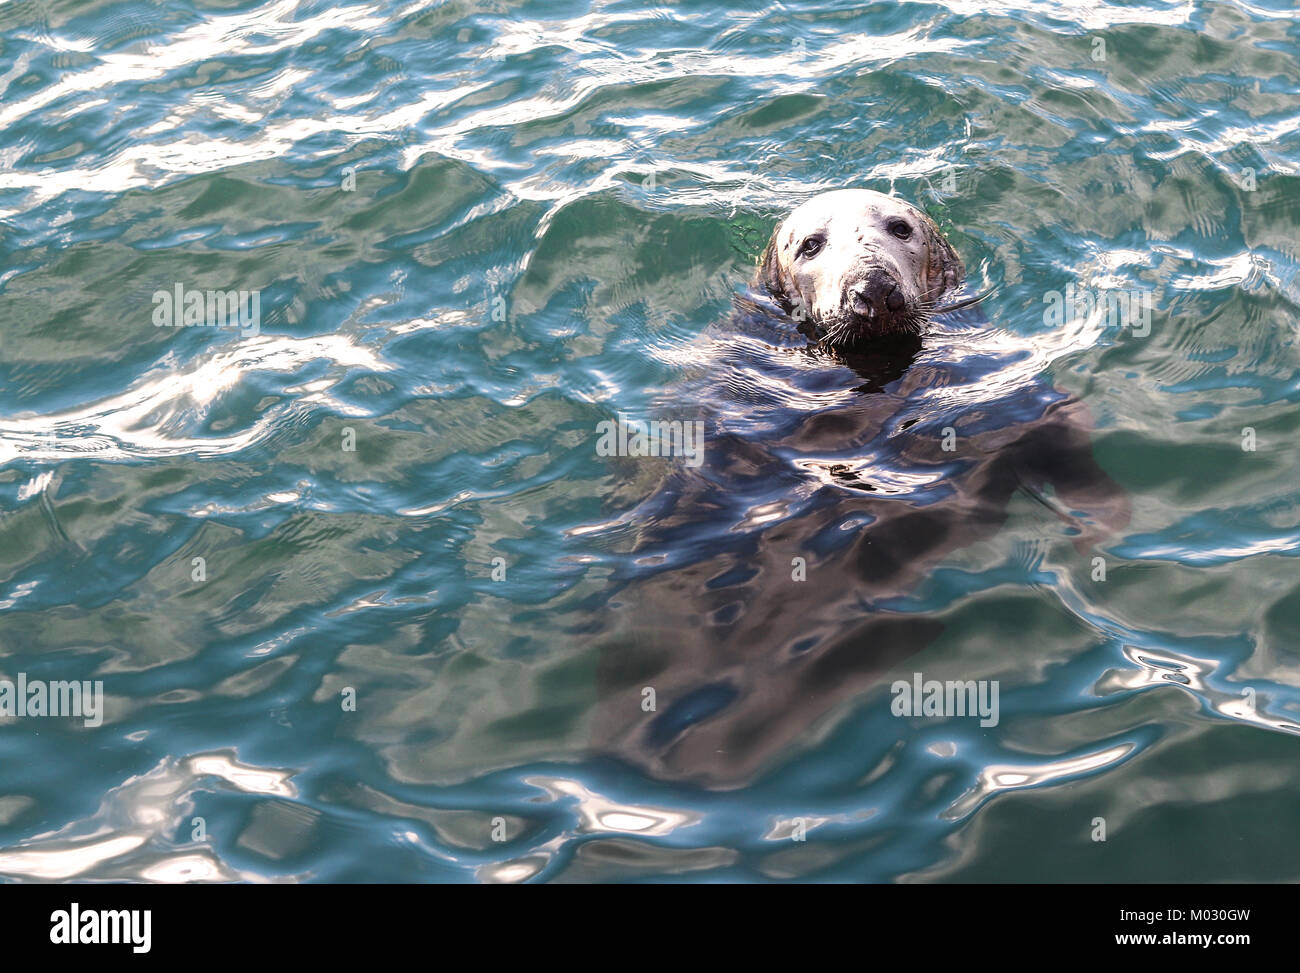 Seal in Dublin. Fishermen have been complaining on the impact that seals are having on their livelihoods in Ireland. - Stock Image